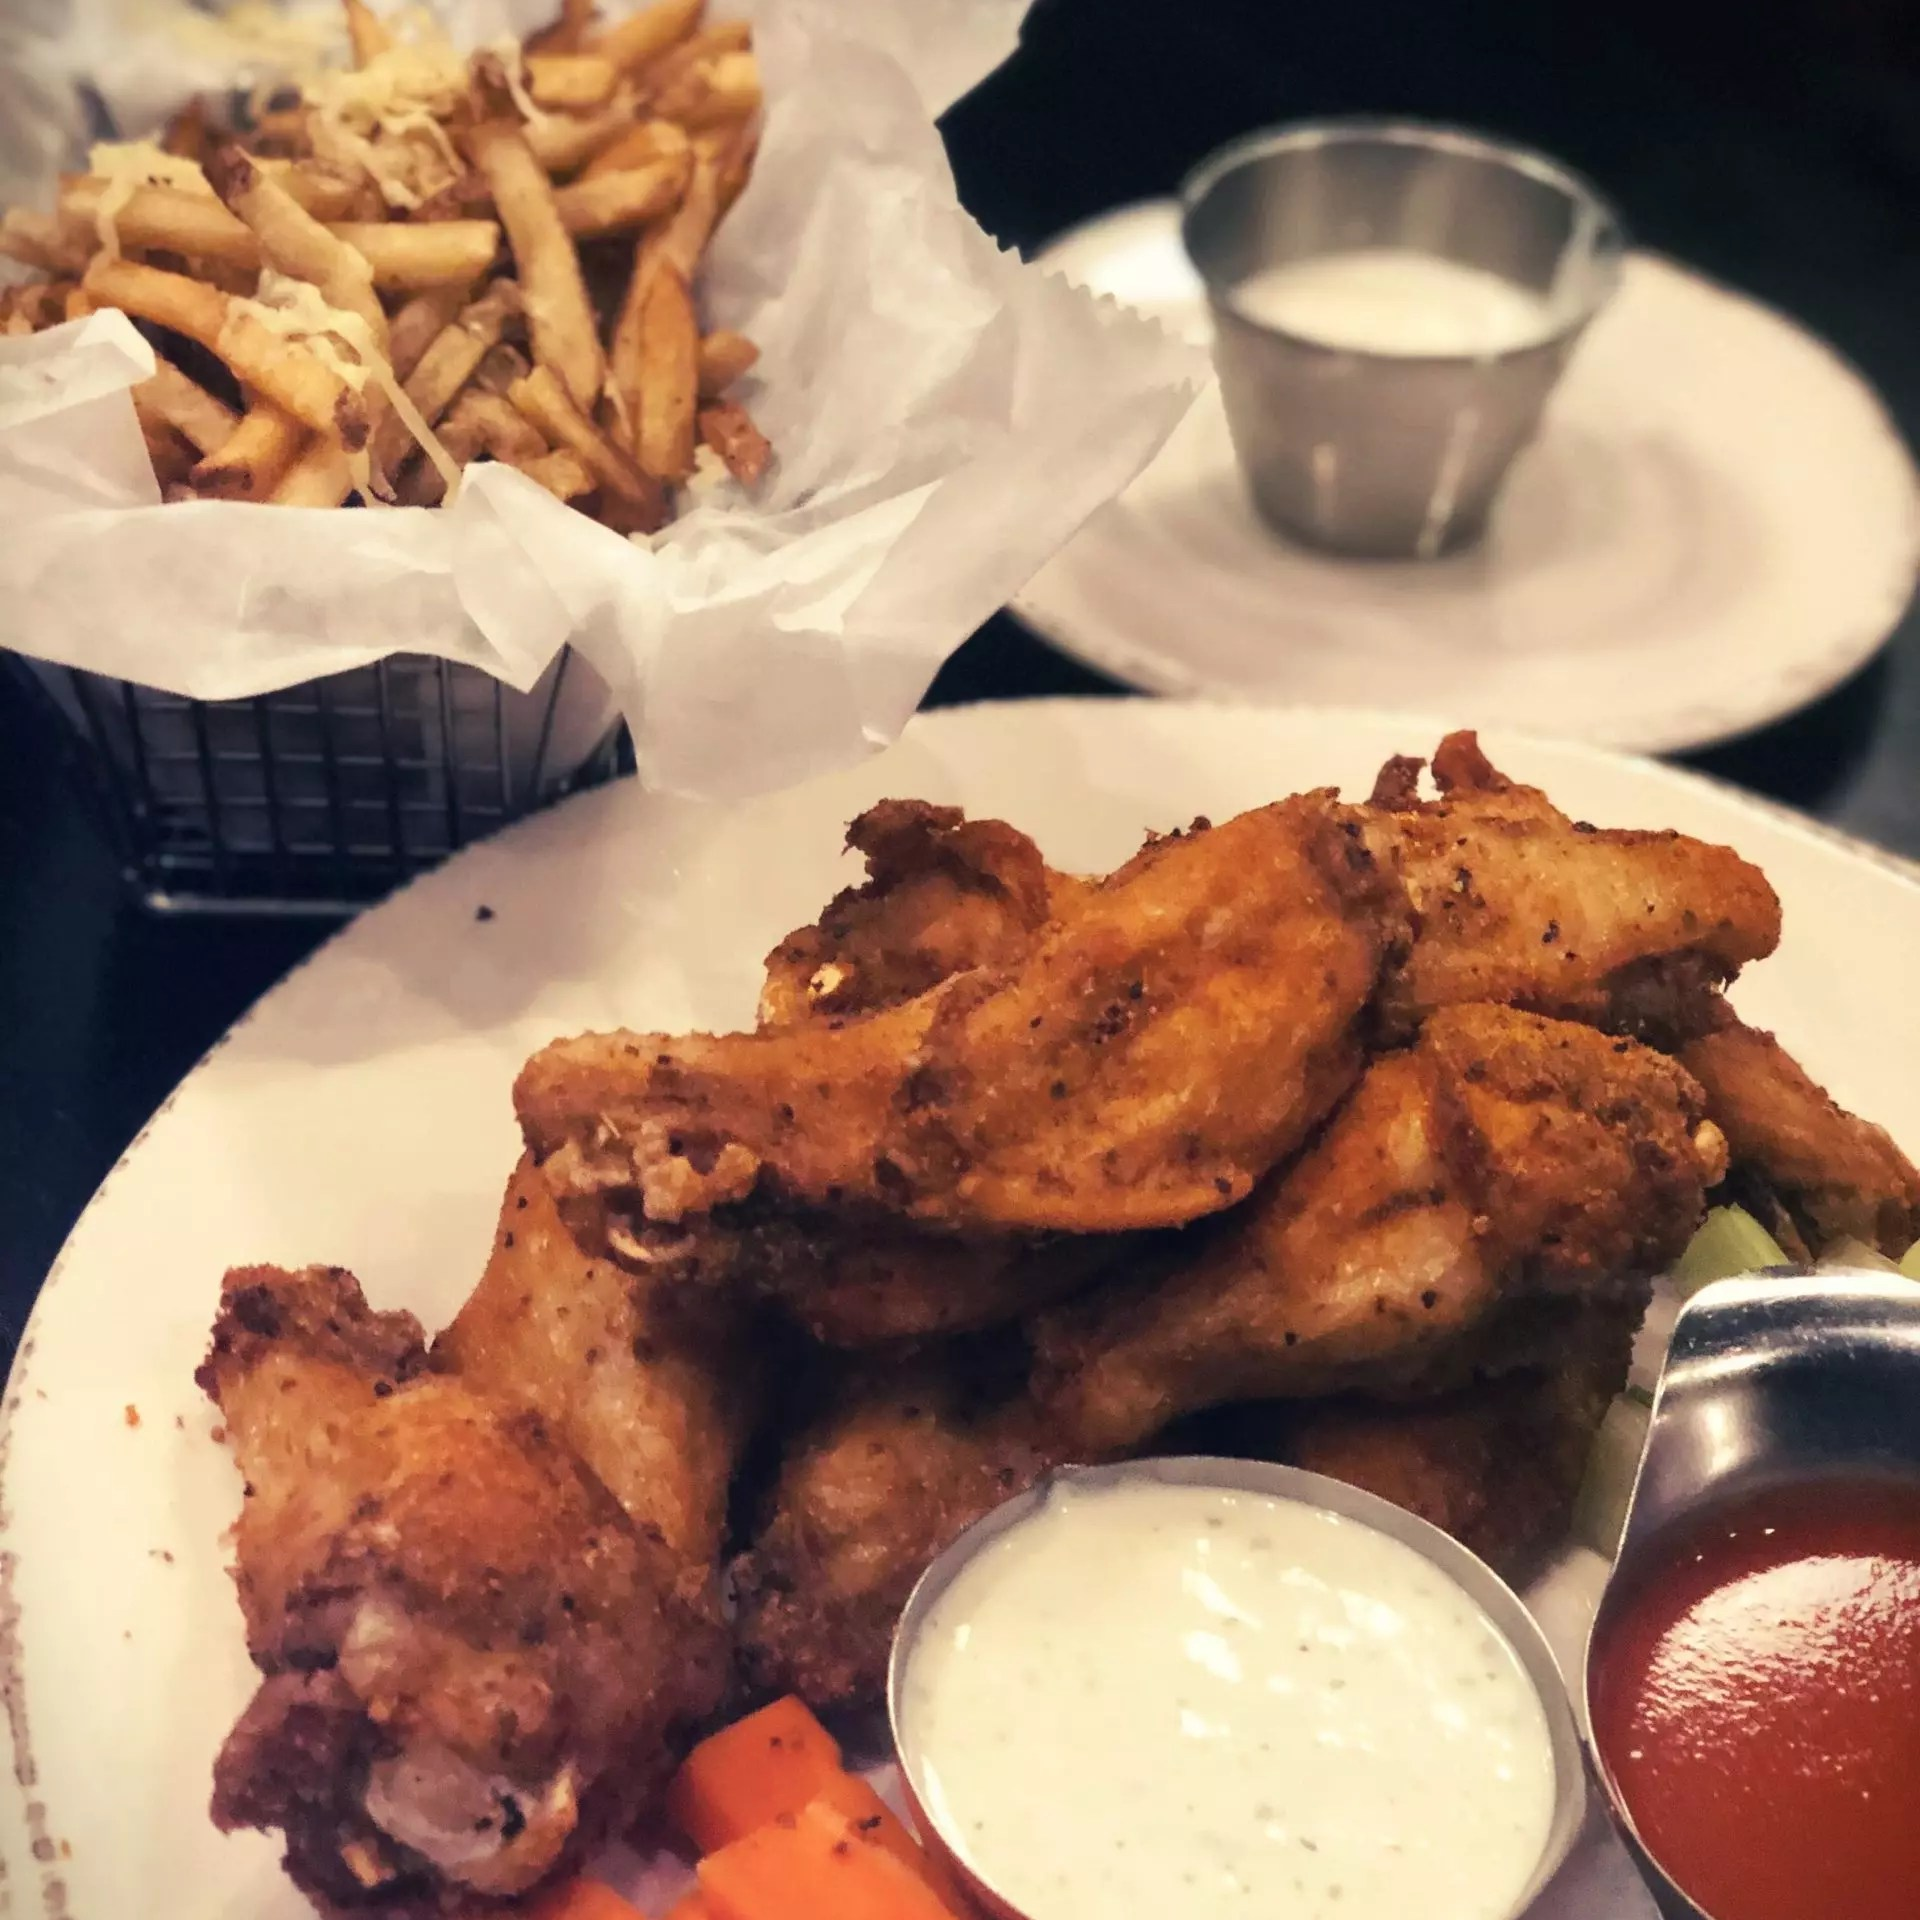 Picture of a plate of chicken wings from Fat City Kitchen.